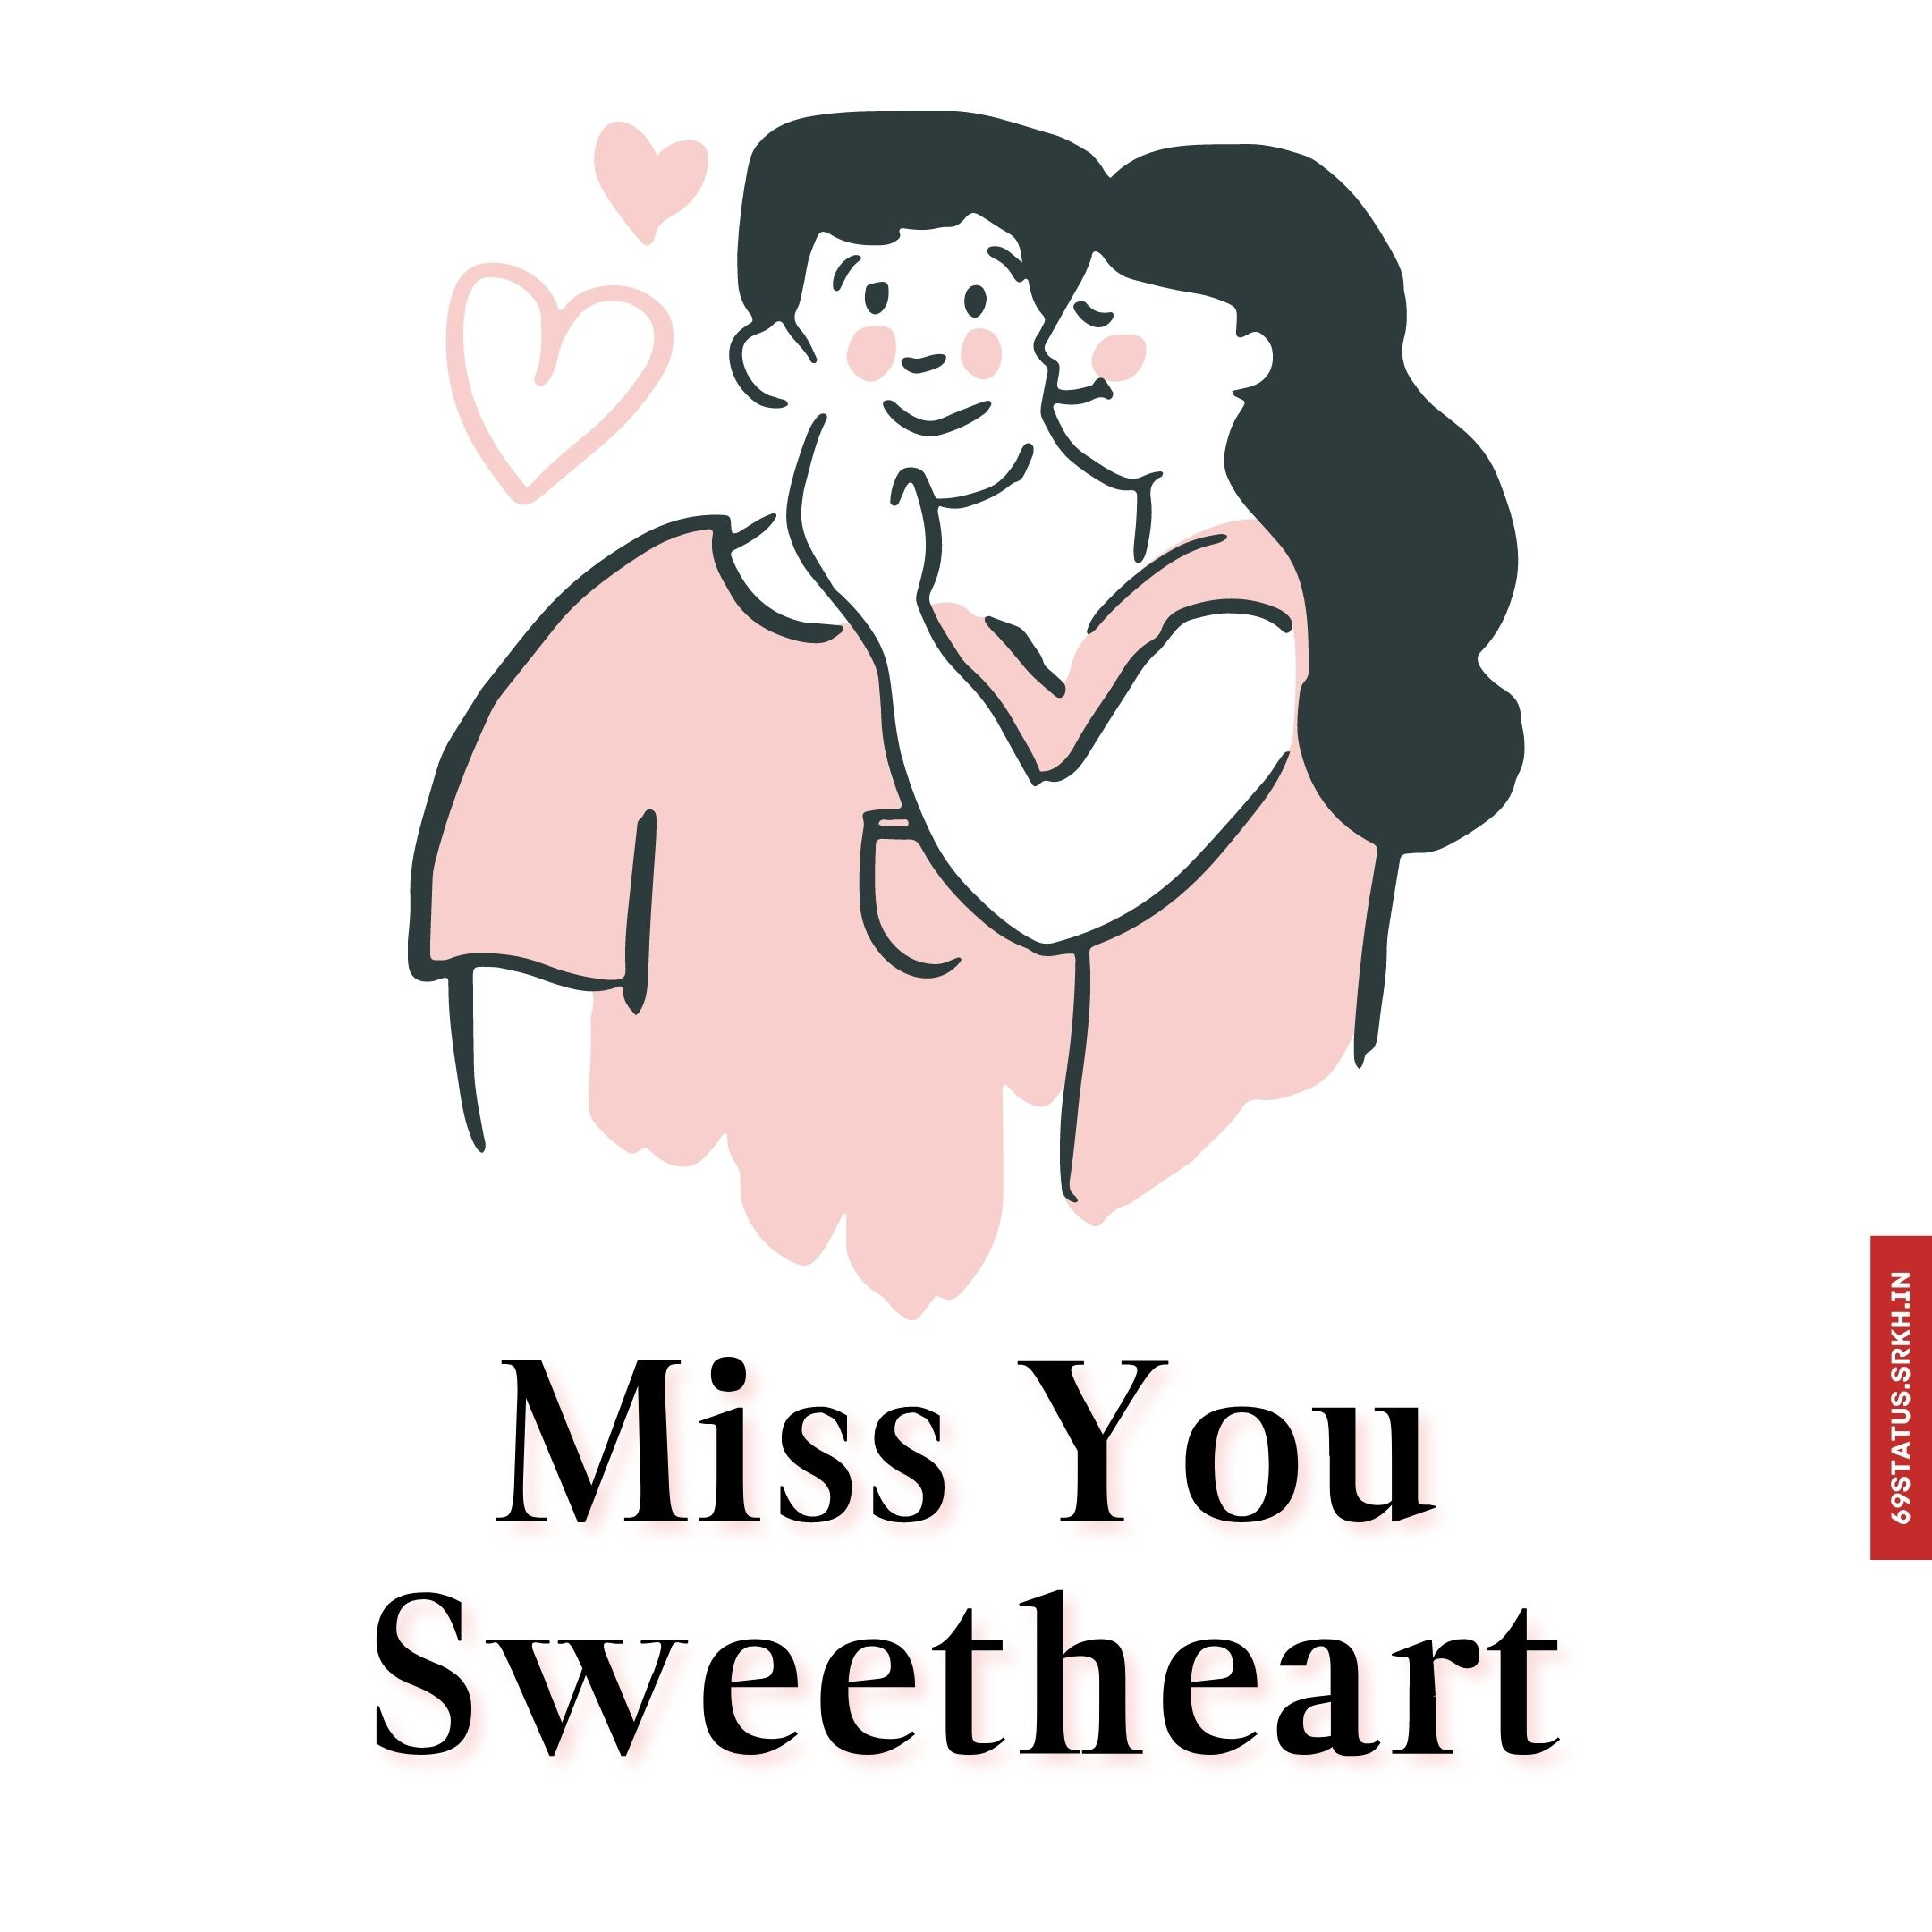 Miss you sweetheart images full HD free download.